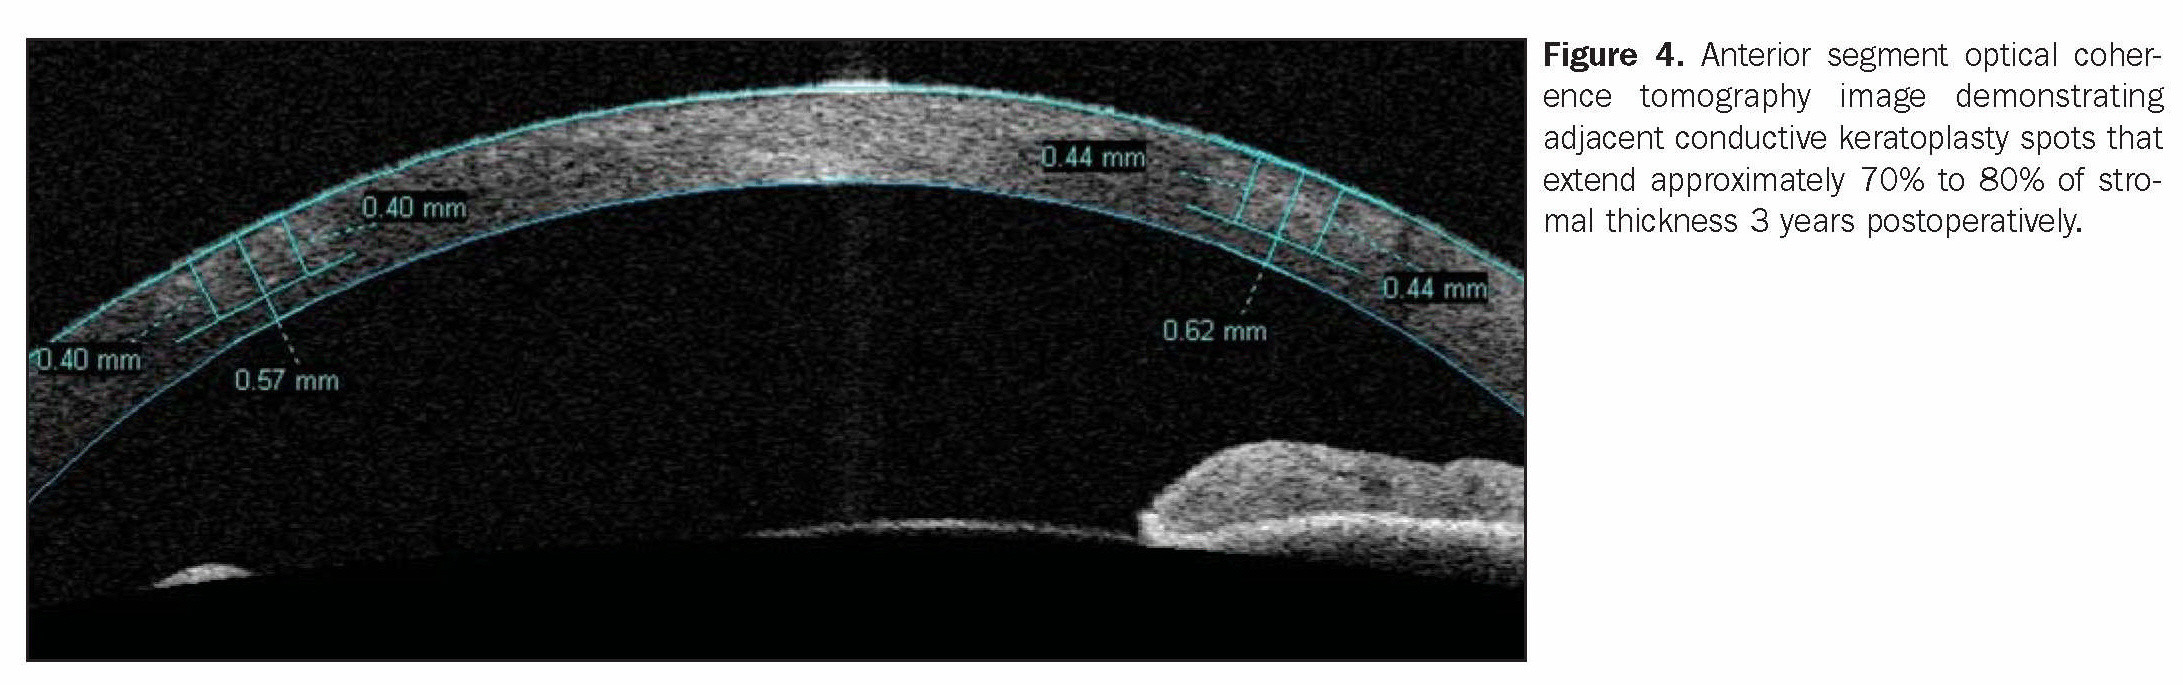 Figure 4. Anterior segment optical coherence tomography image demonstrating adjacent conductive keratoplasty spots that extend approximately 70% to 80% of stromal thickness 3 years postoperatively.